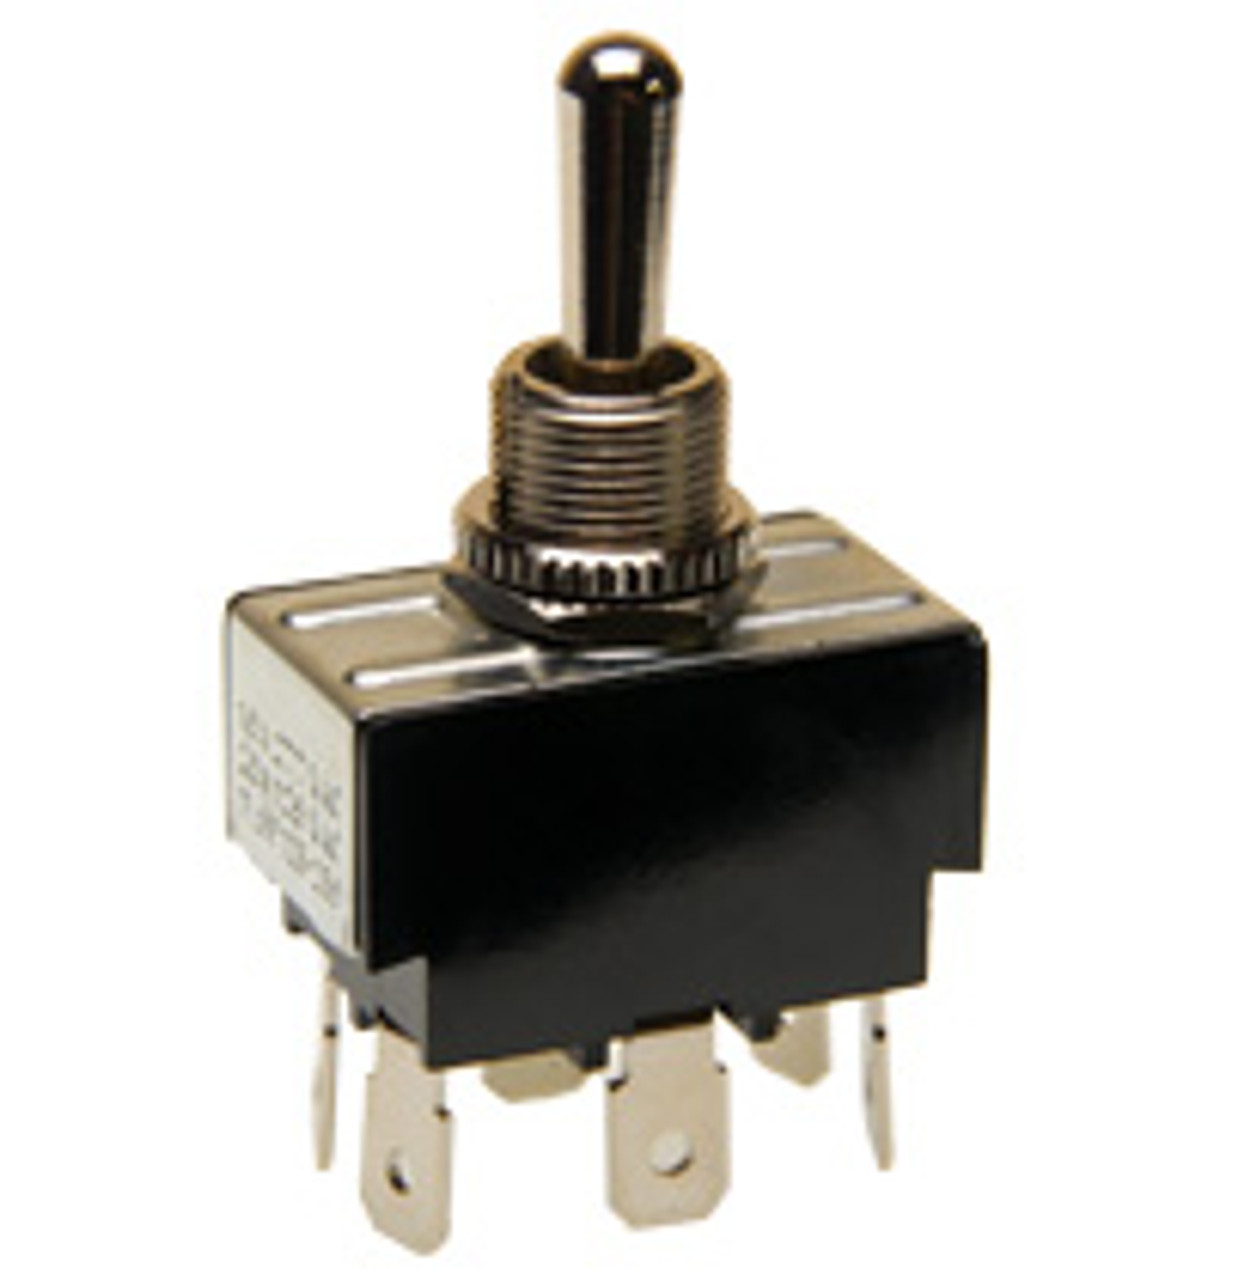 medium resolution of momentary toggle switch spring return to center off position way of wiring up a 3 position 6 pole center off switch aka a